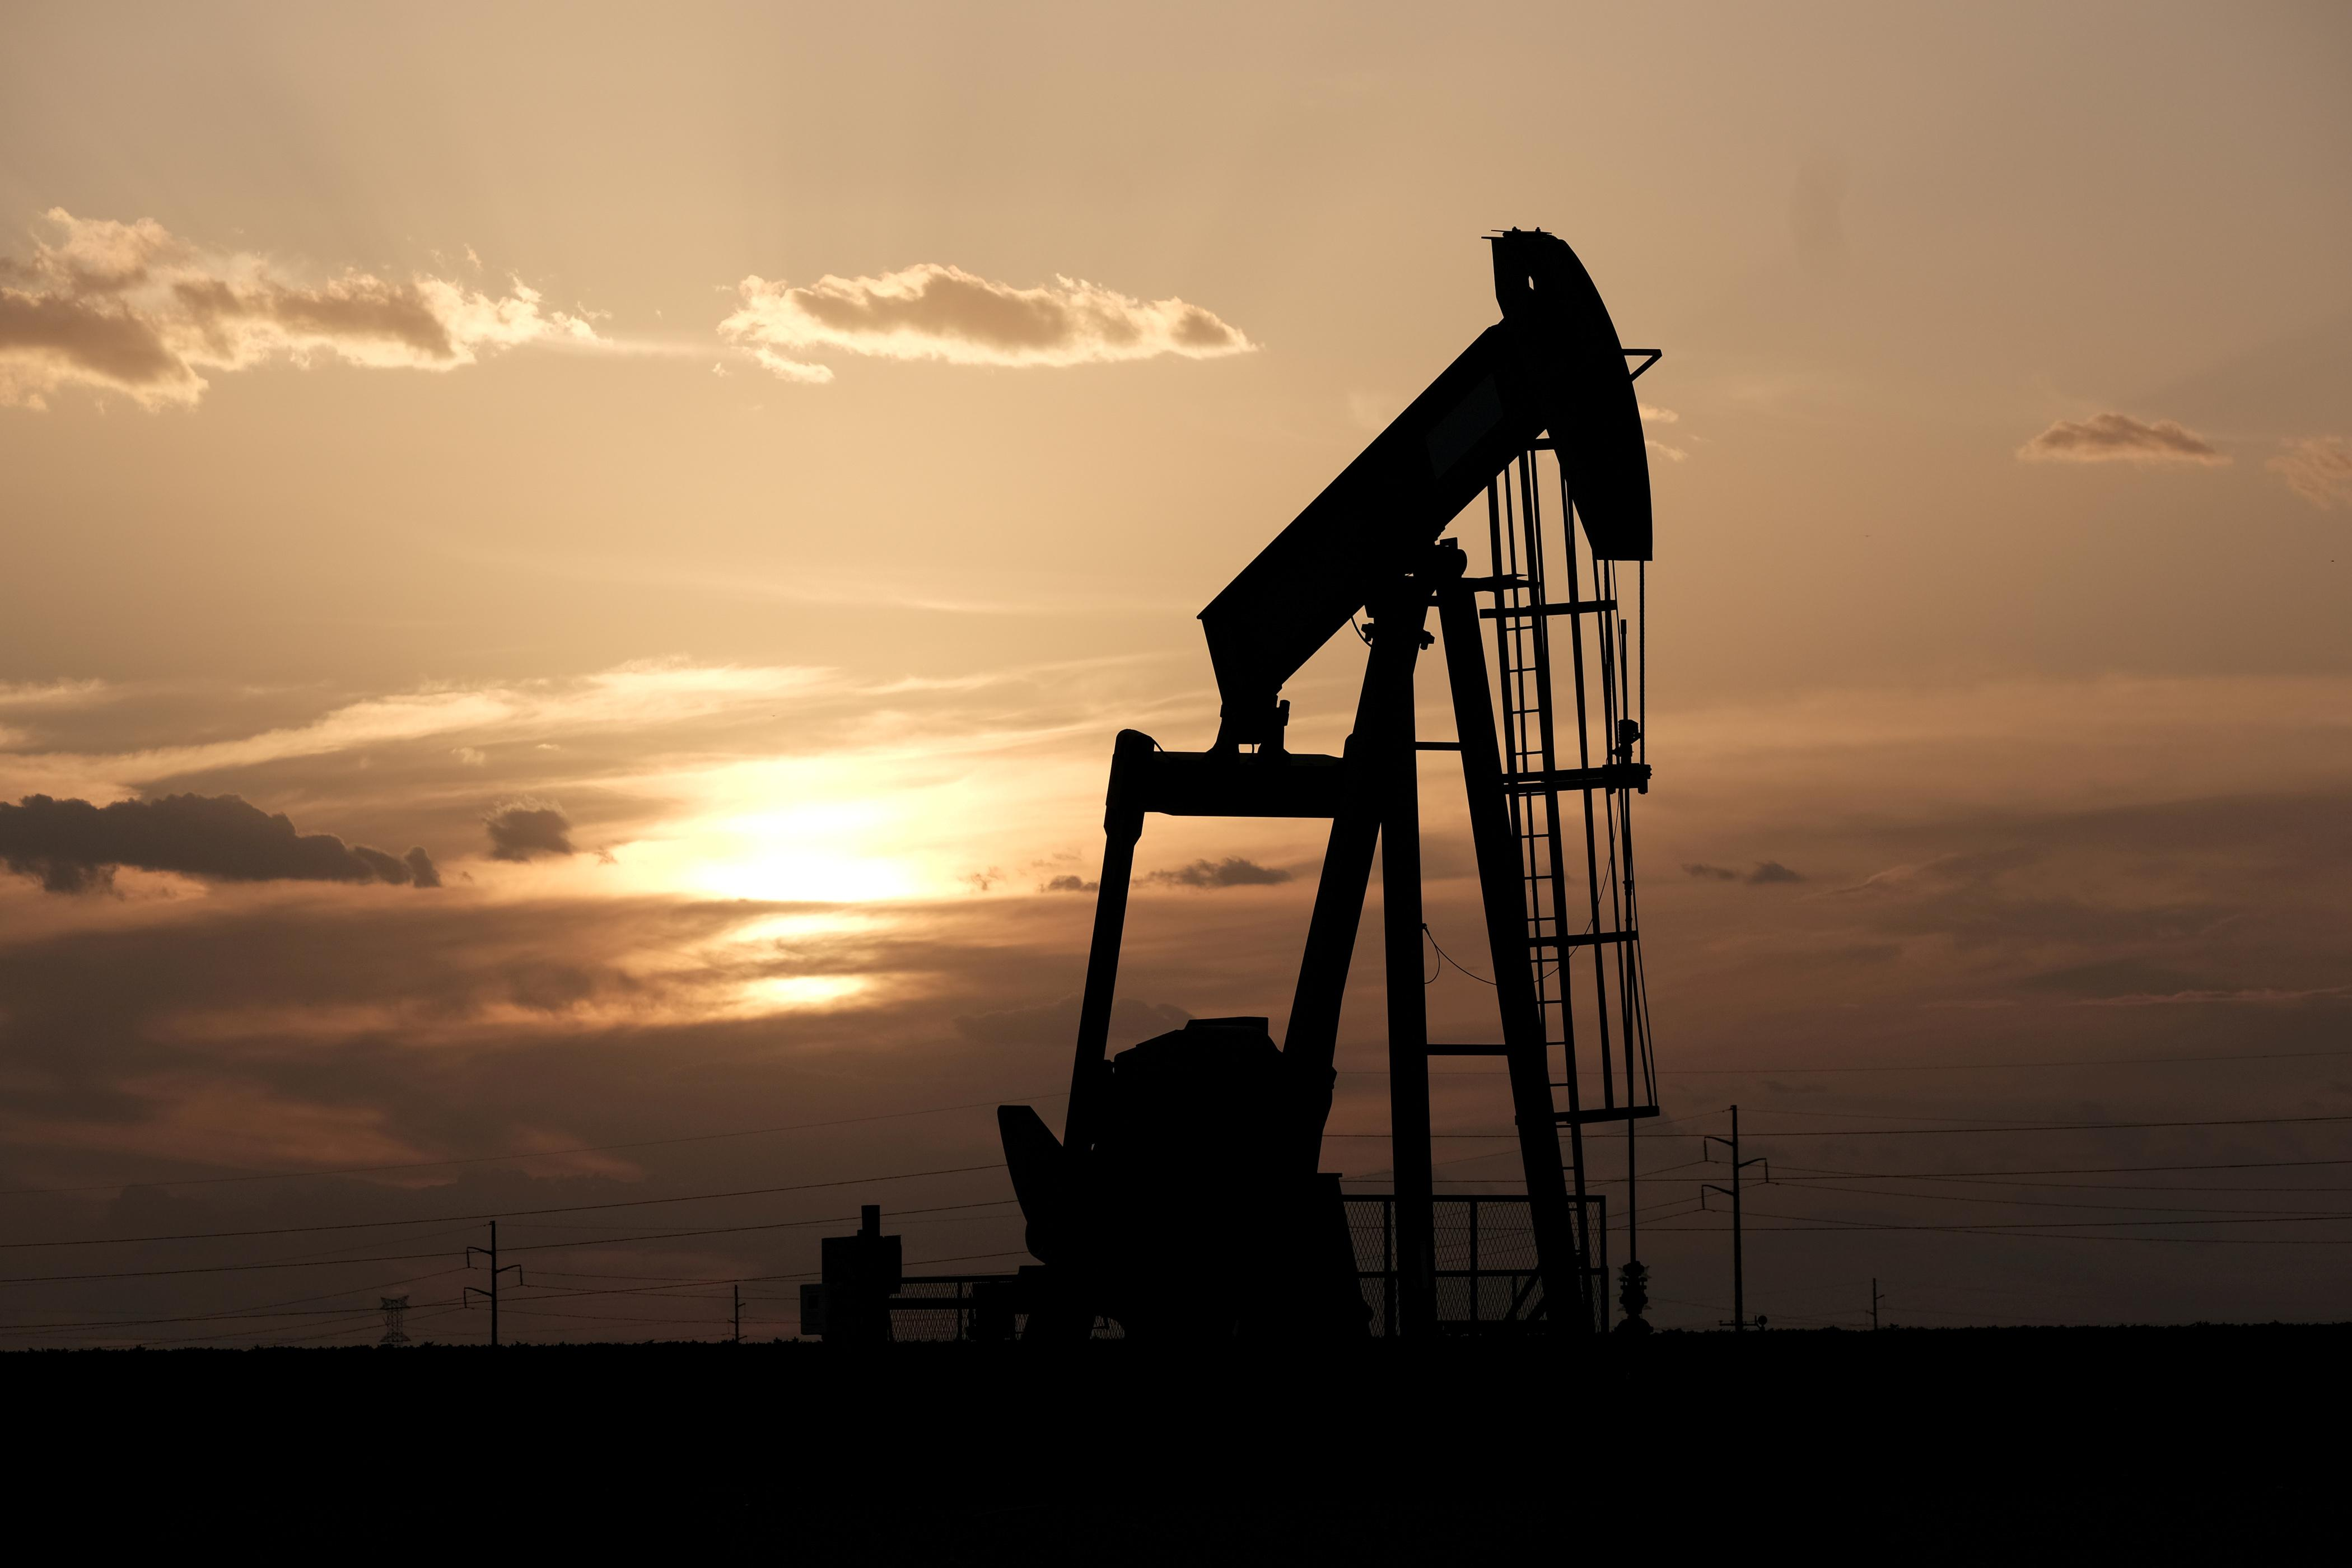 Oil rises to two-month high on hopes of longer OPEC cuts,...